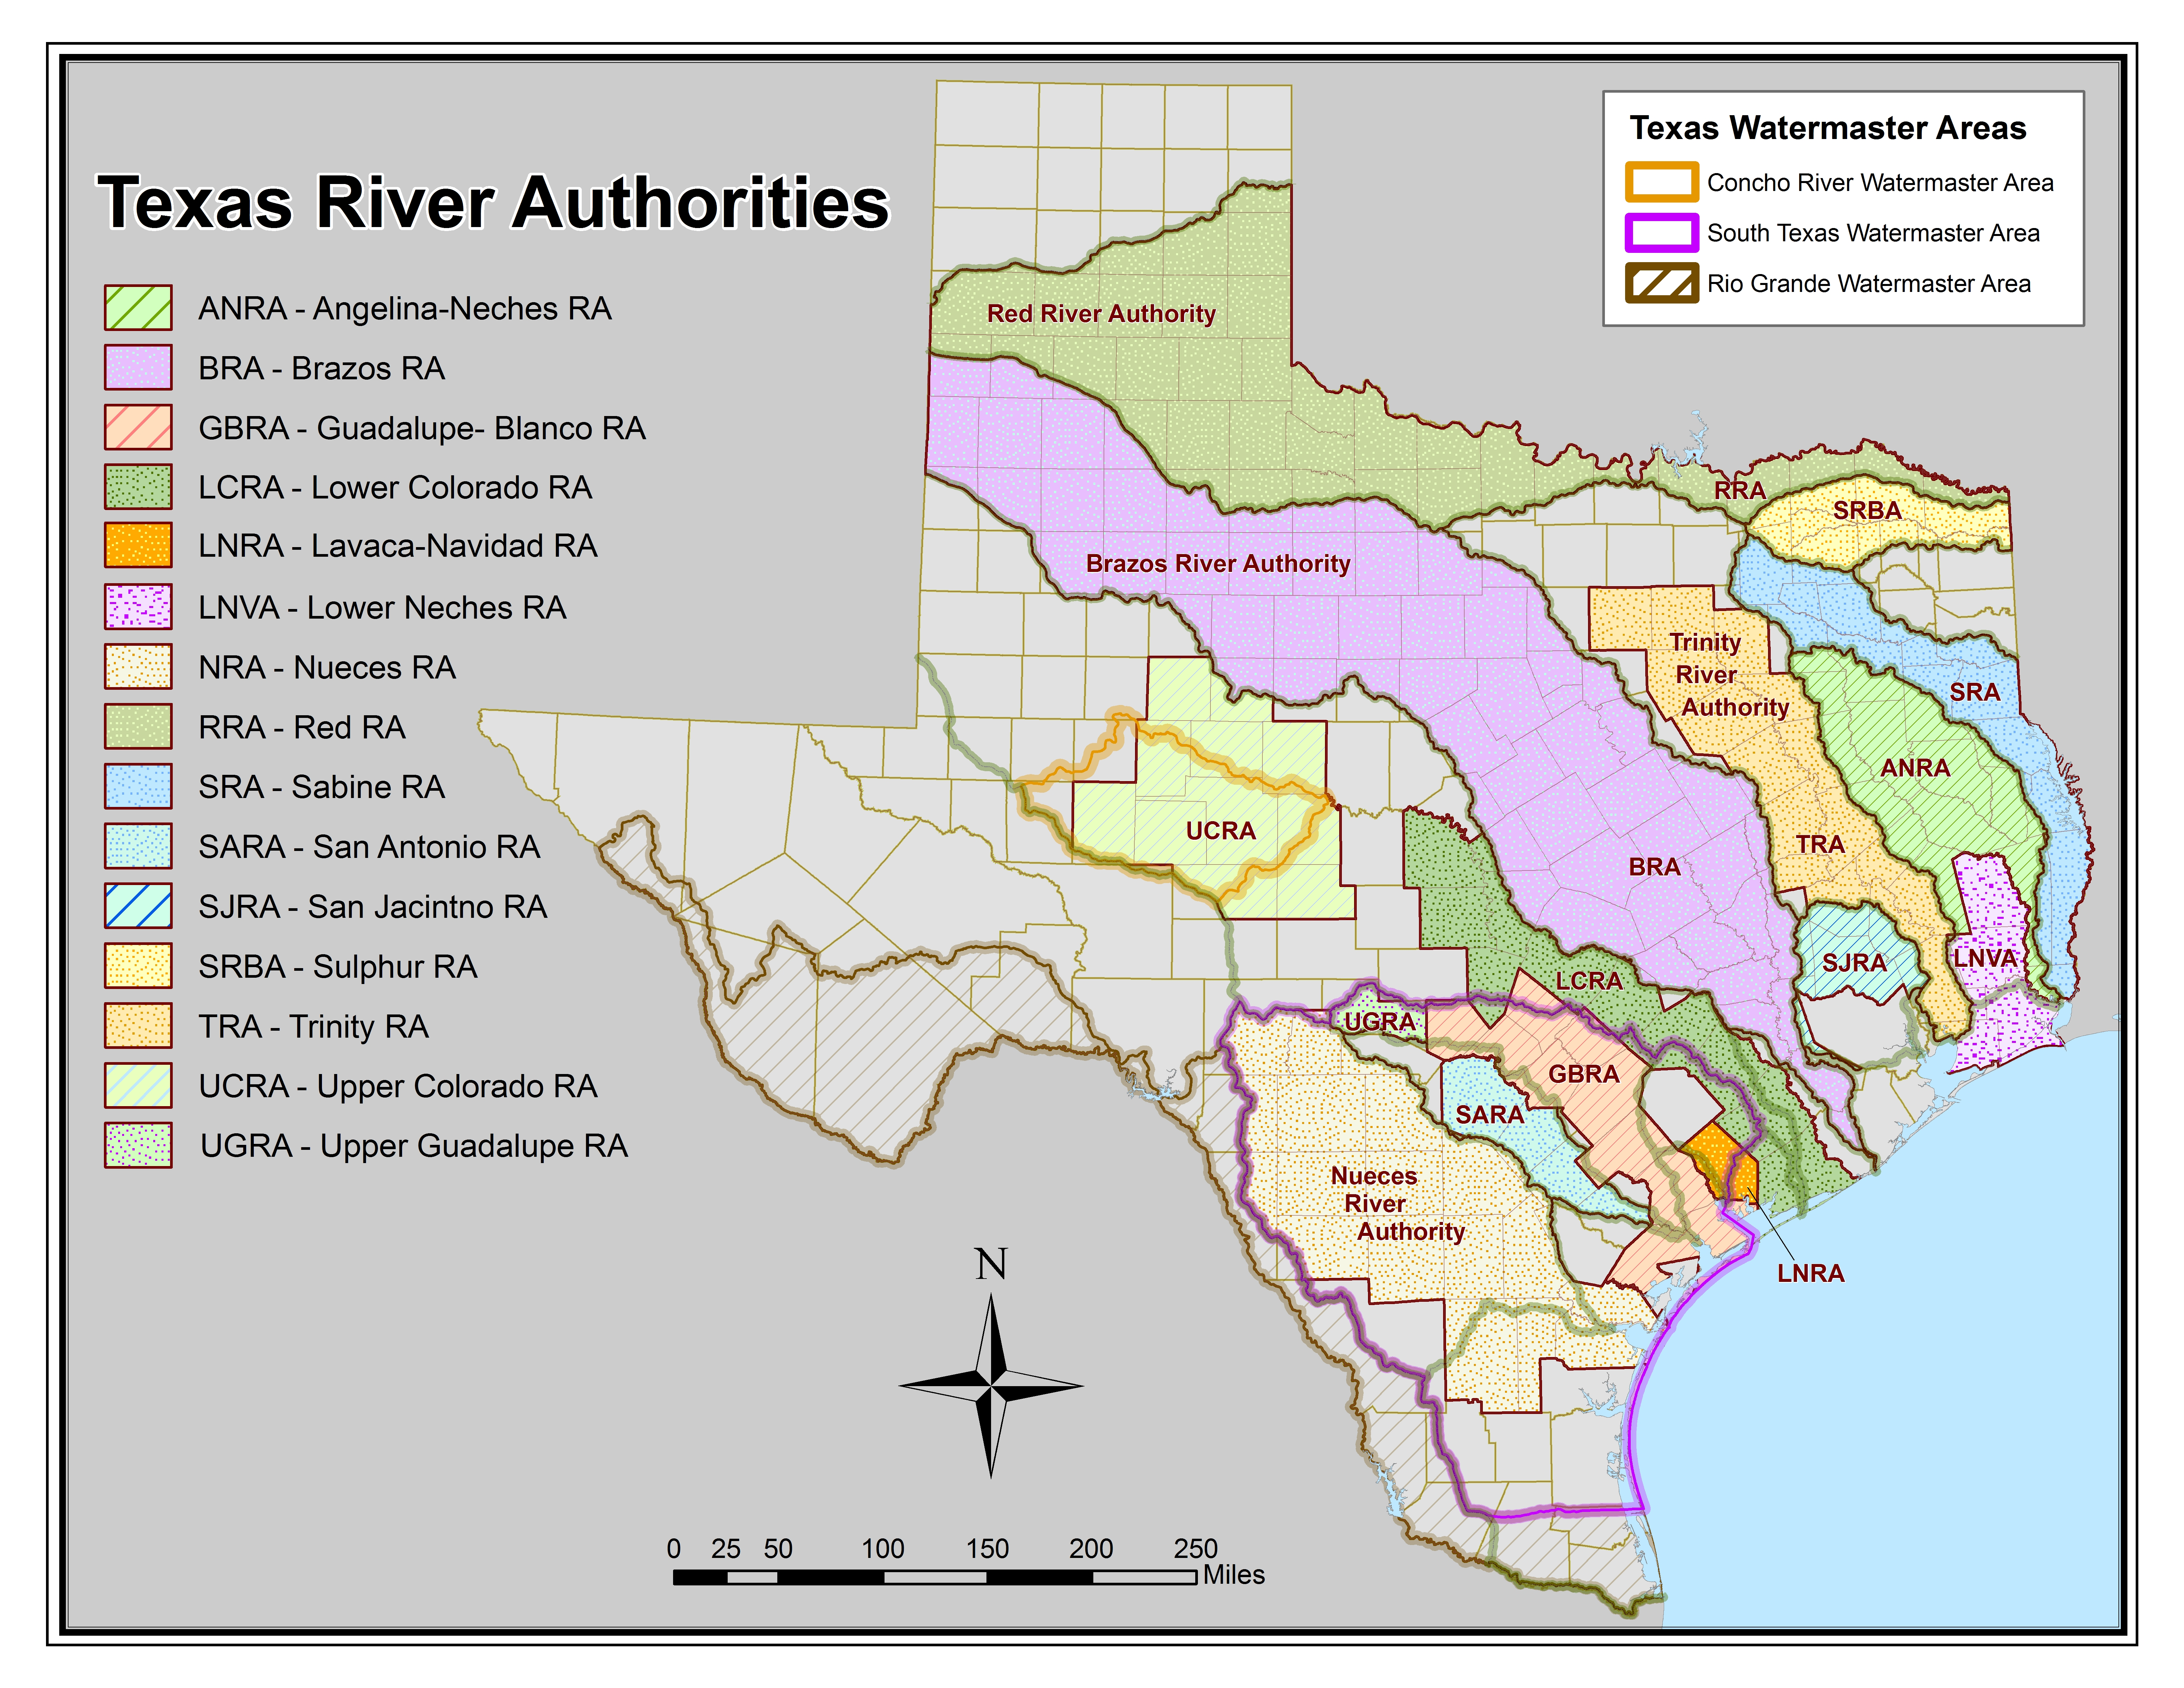 21 New Map Texas Rivers Bnhspine Com